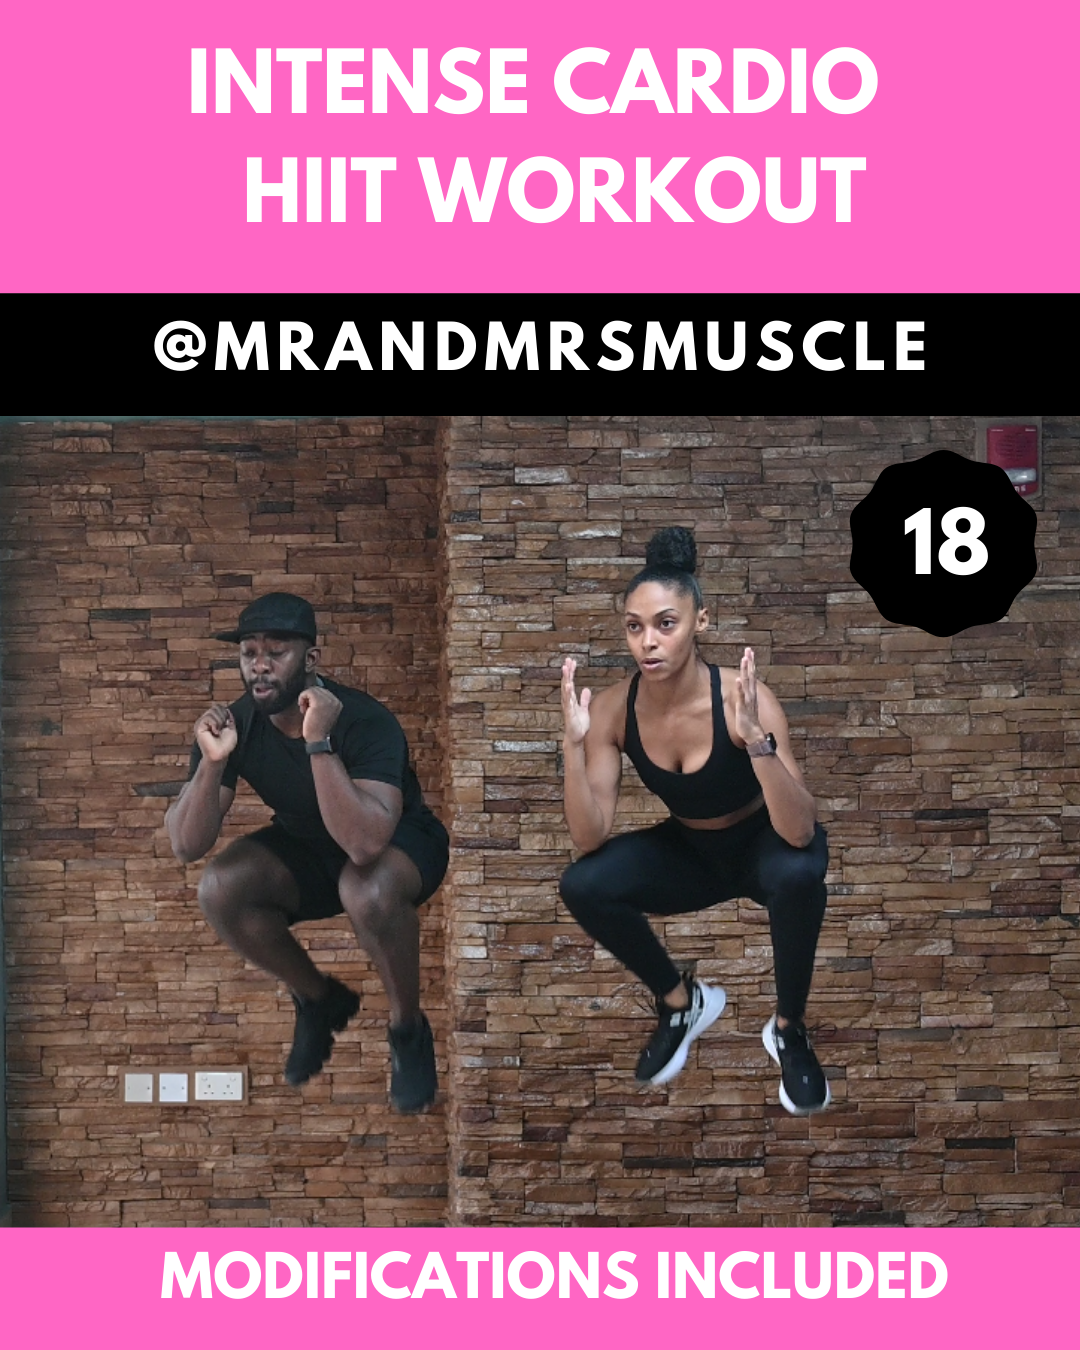 Break a huge sweat in this fun and intense cardio workout. Each exercise has low impact modification...